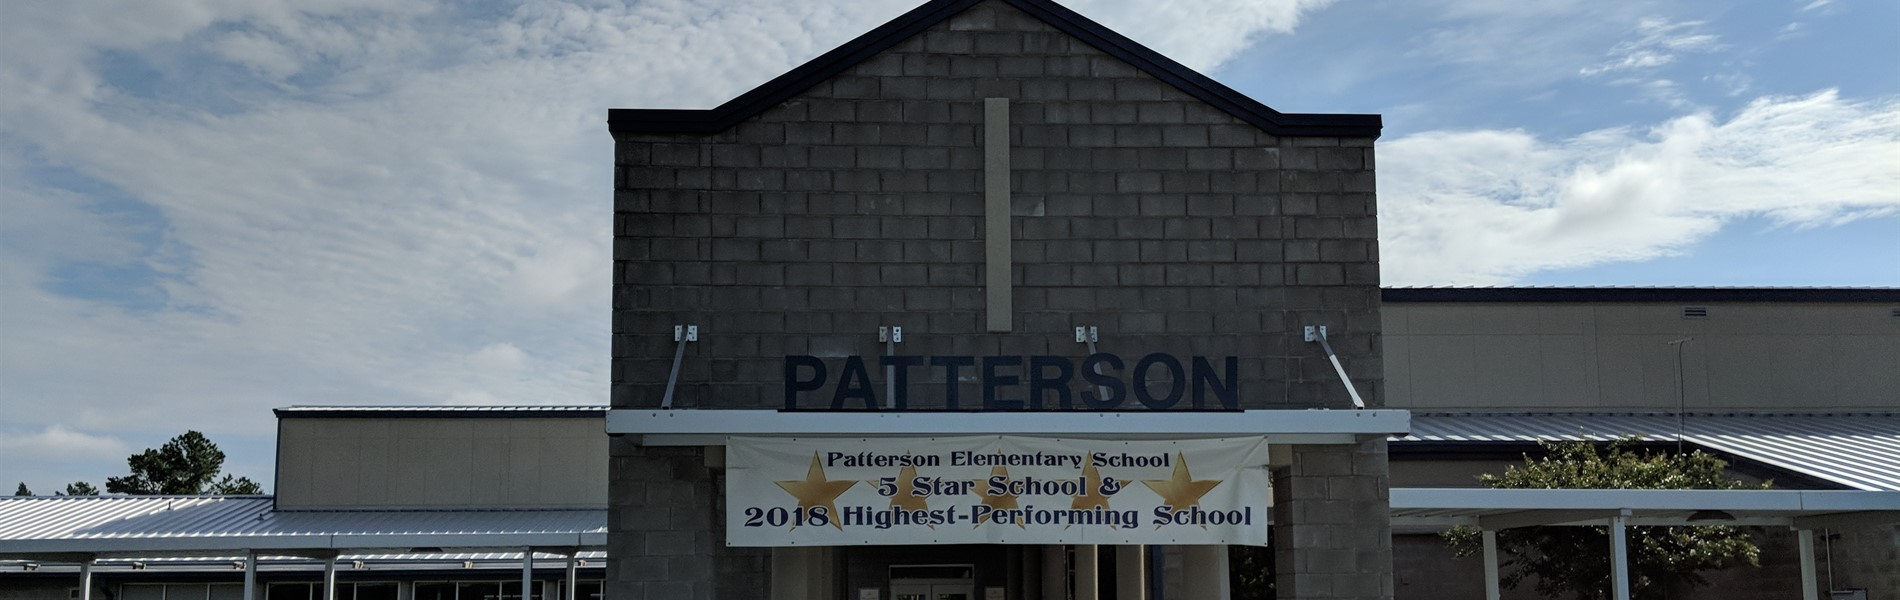 Front entrance of Patterson Elementary